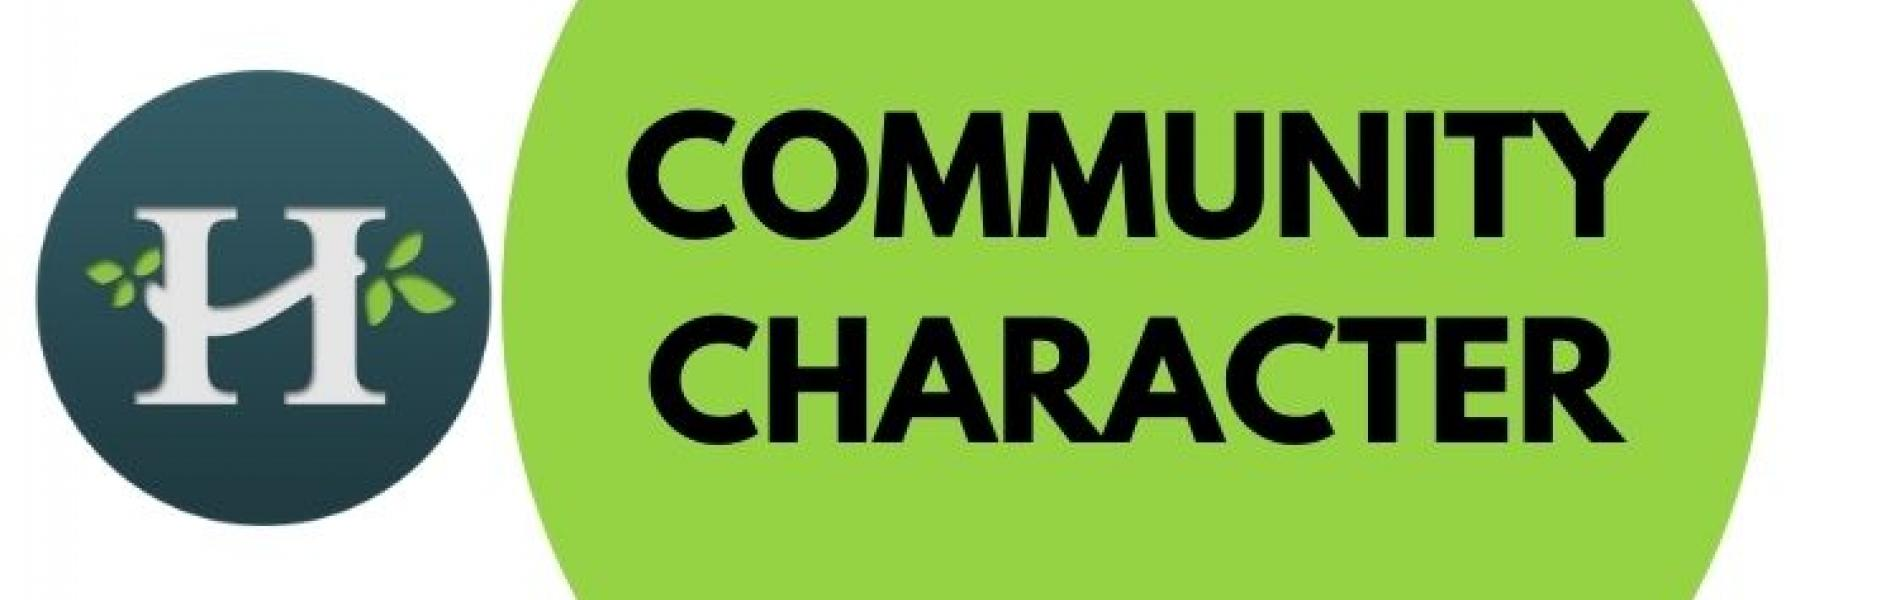 Community Character Meeting Logo